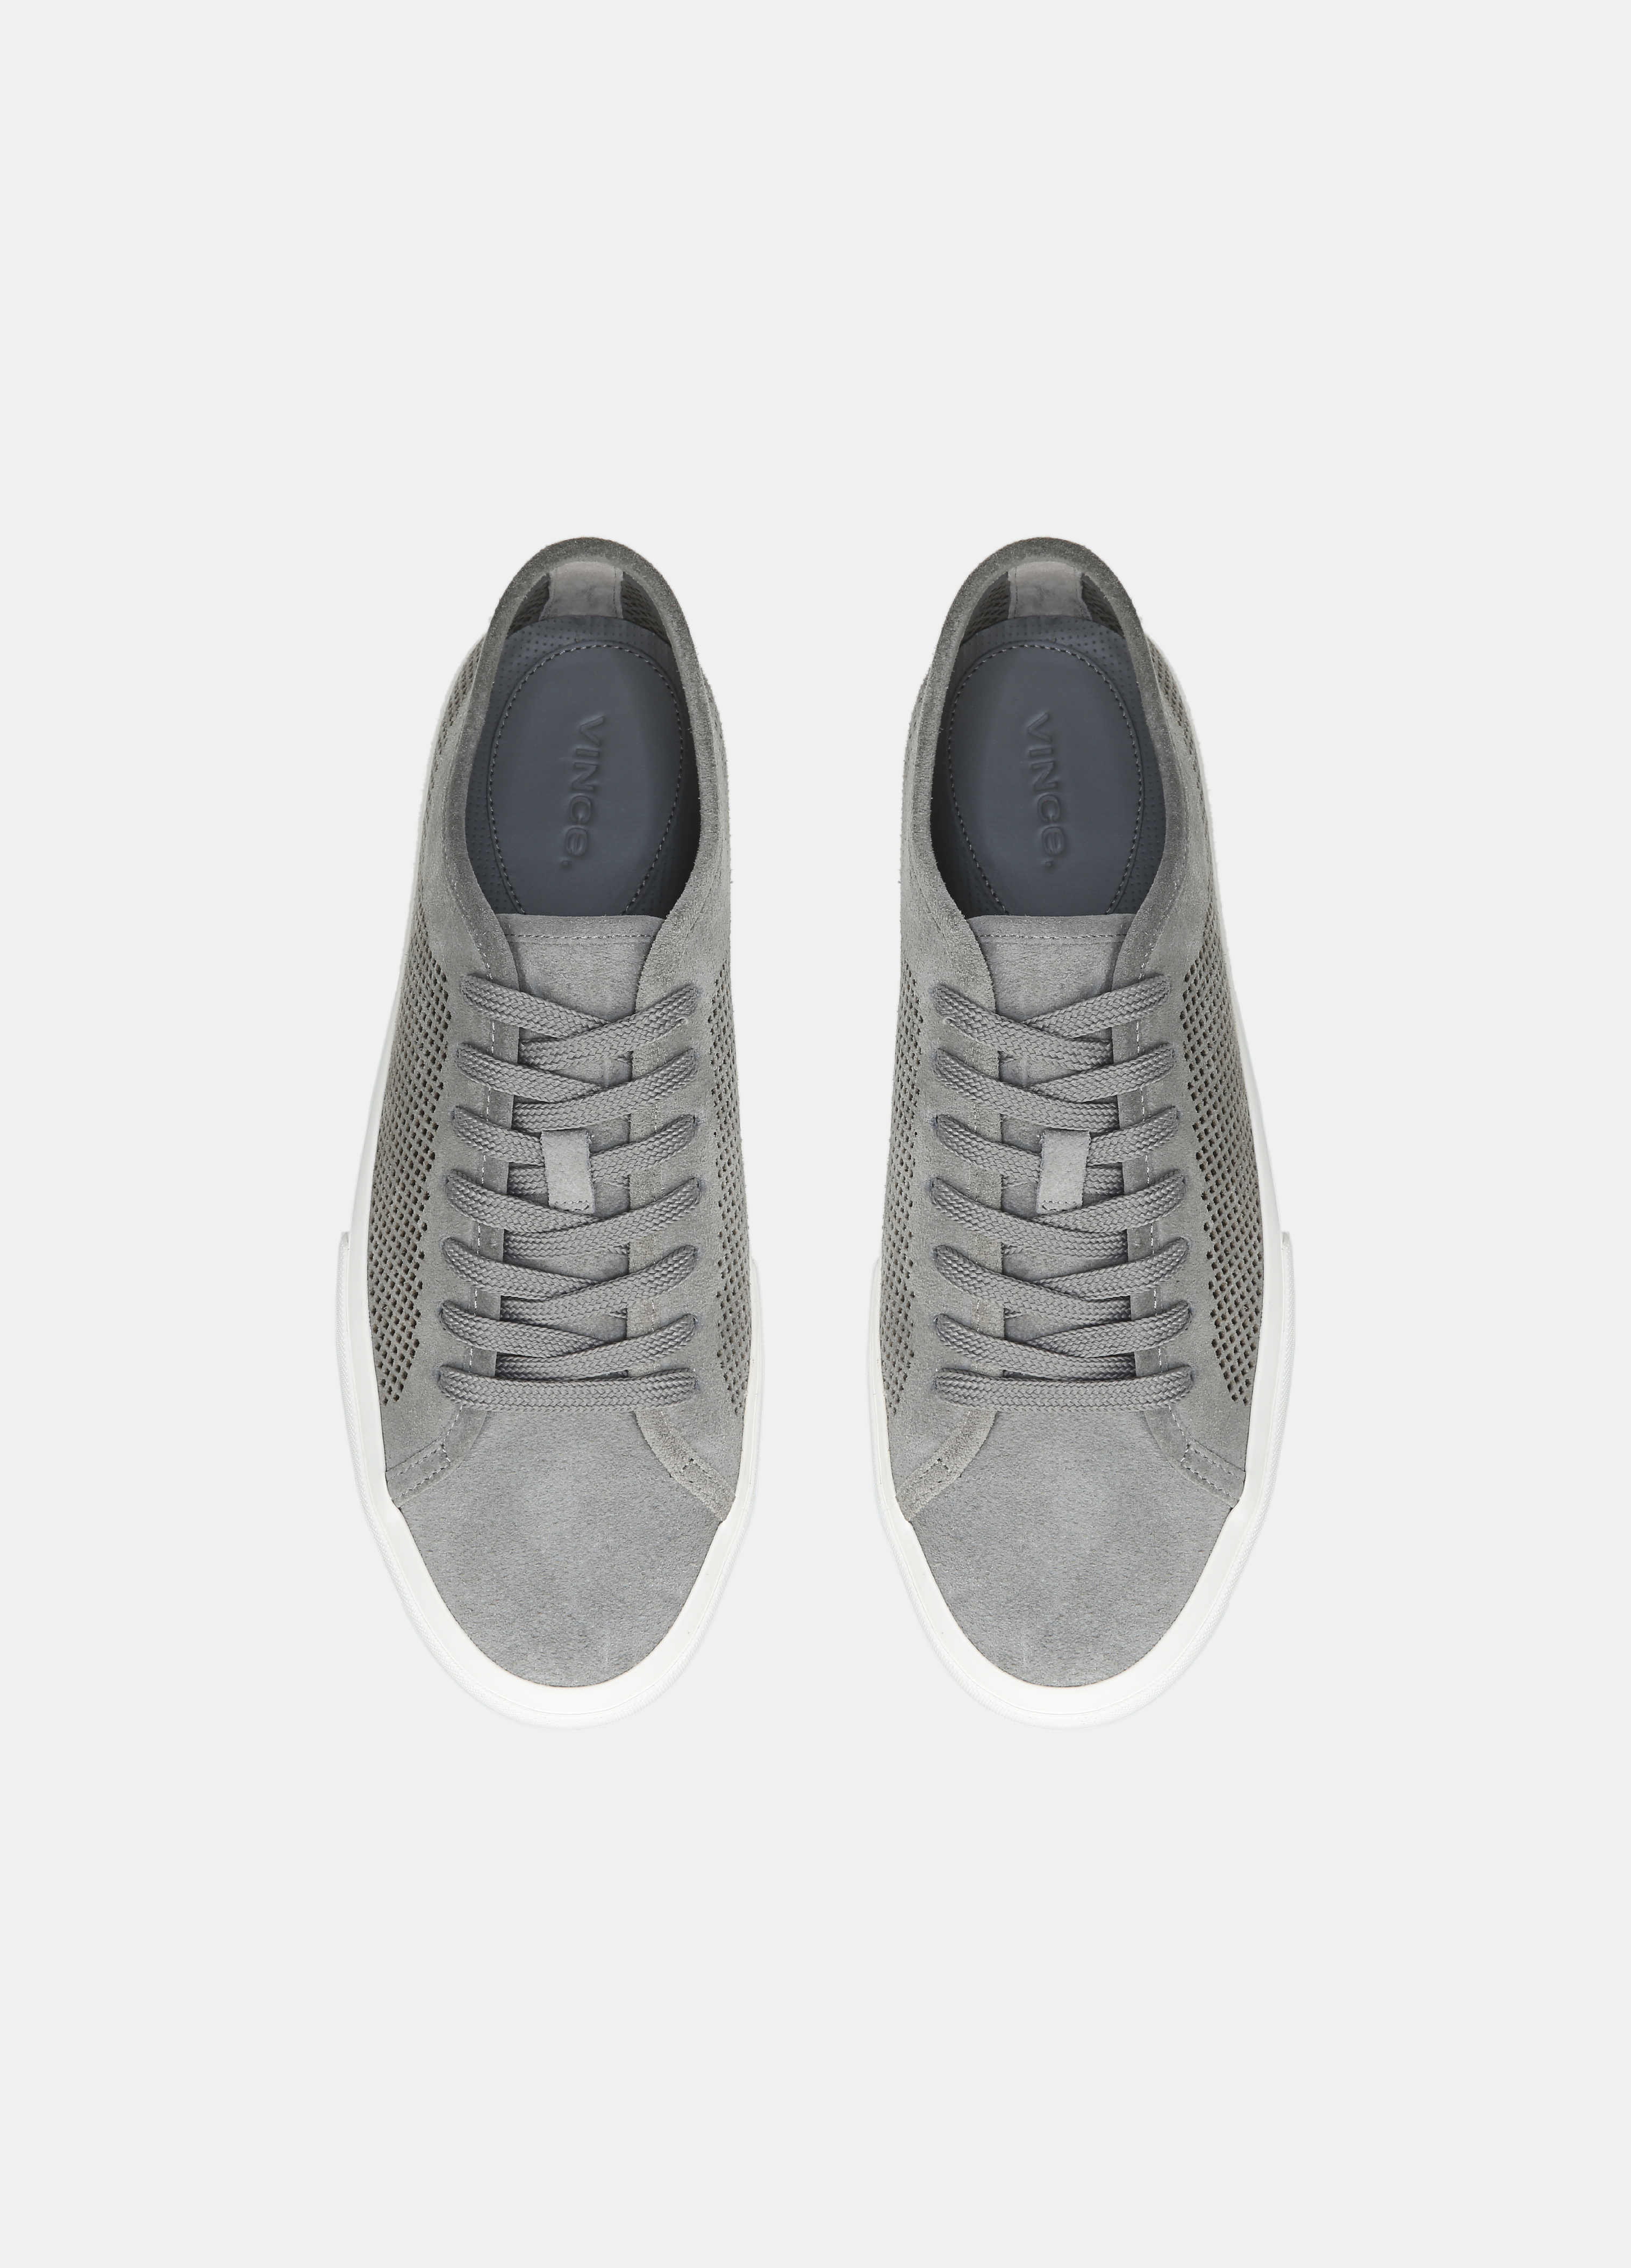 Farrell Perforated Suede Sneaker